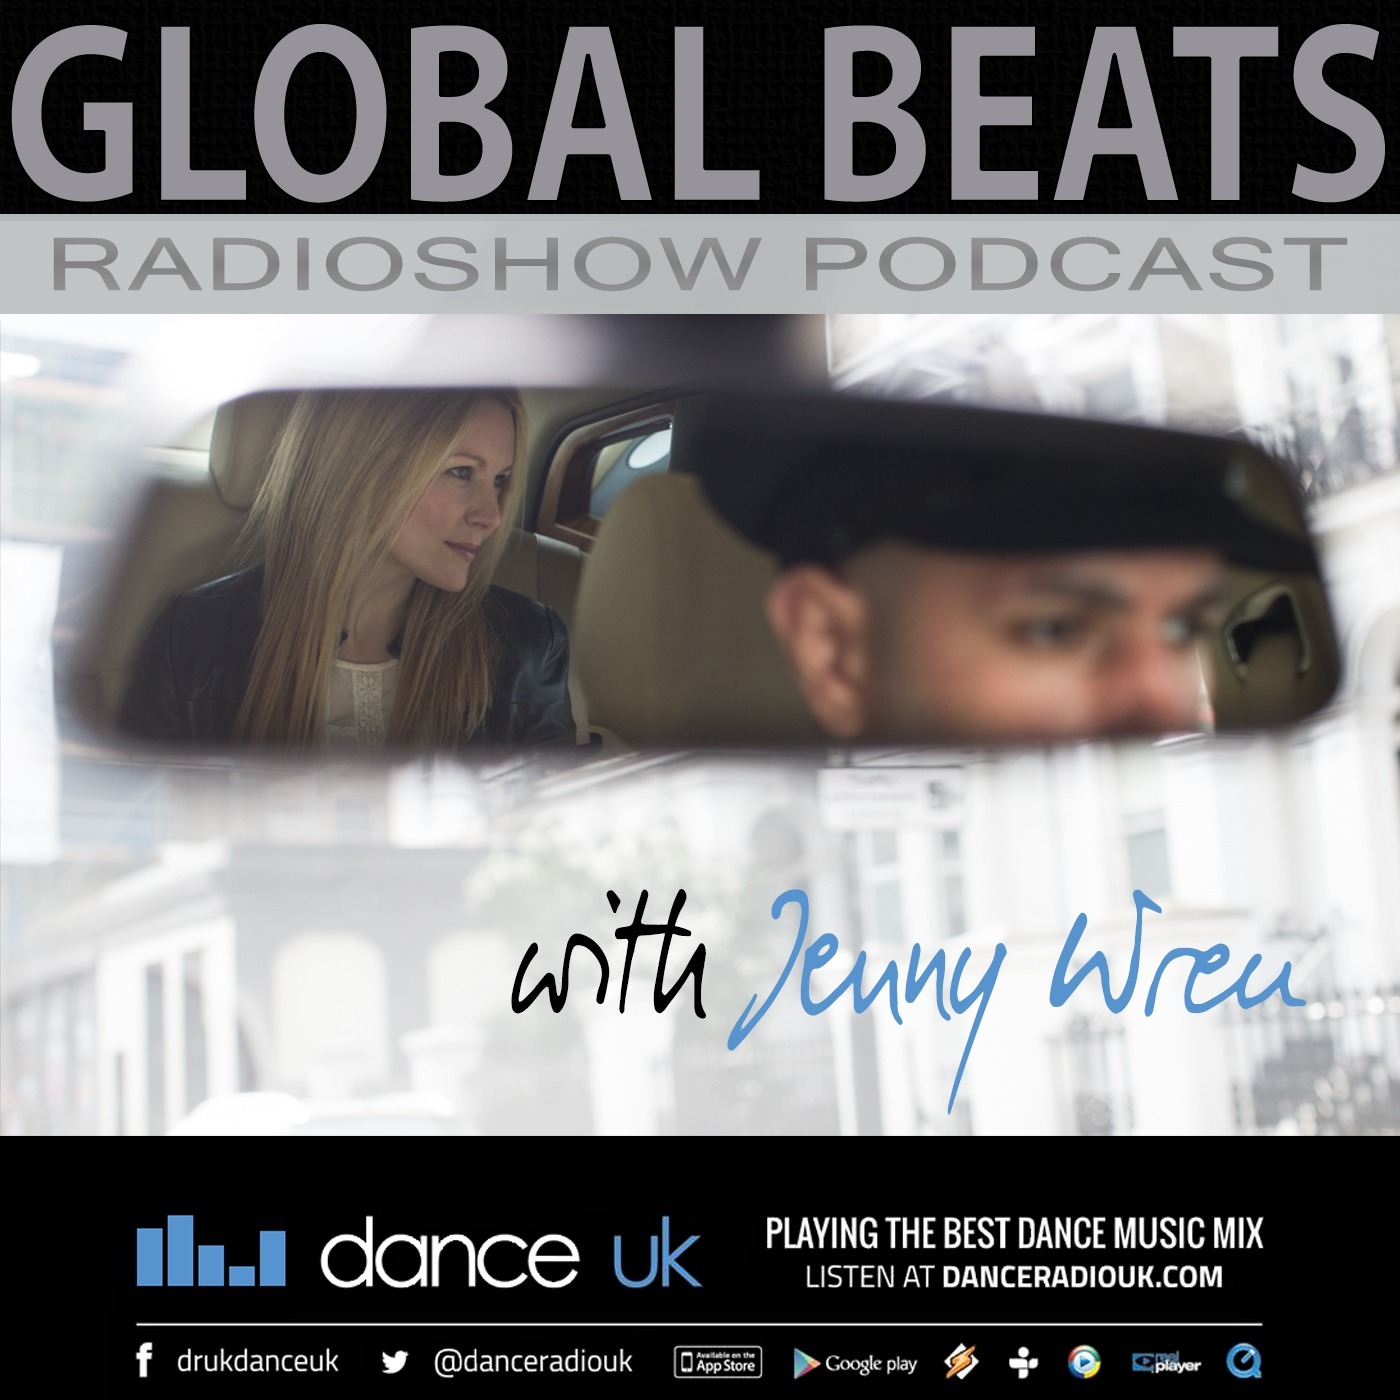 Global Beats Podcast